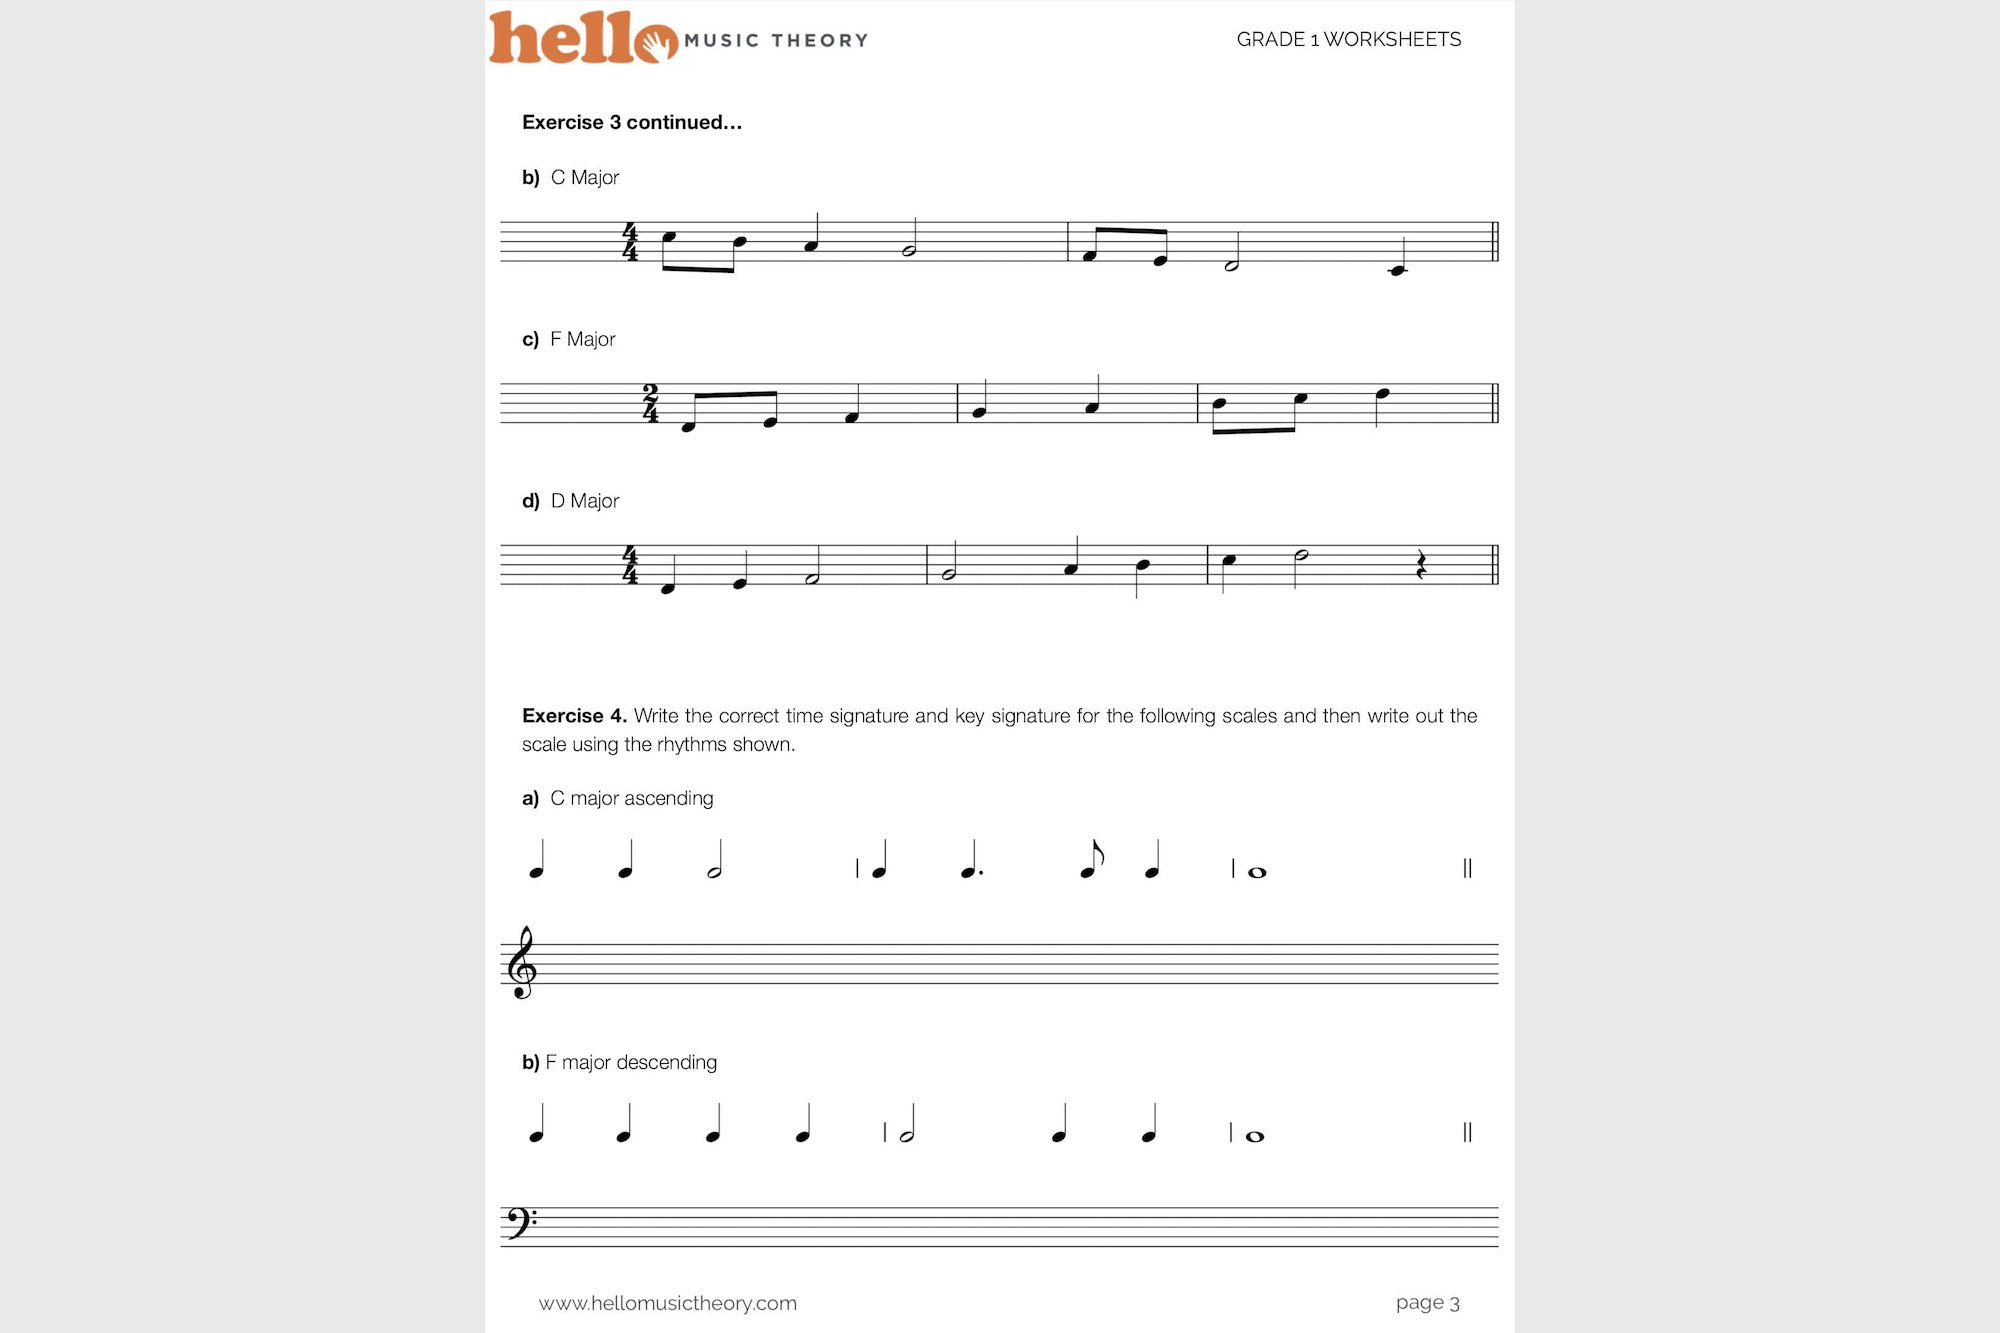 Worksheets Theory Worksheets grade 1 music theory worksheets hello pack